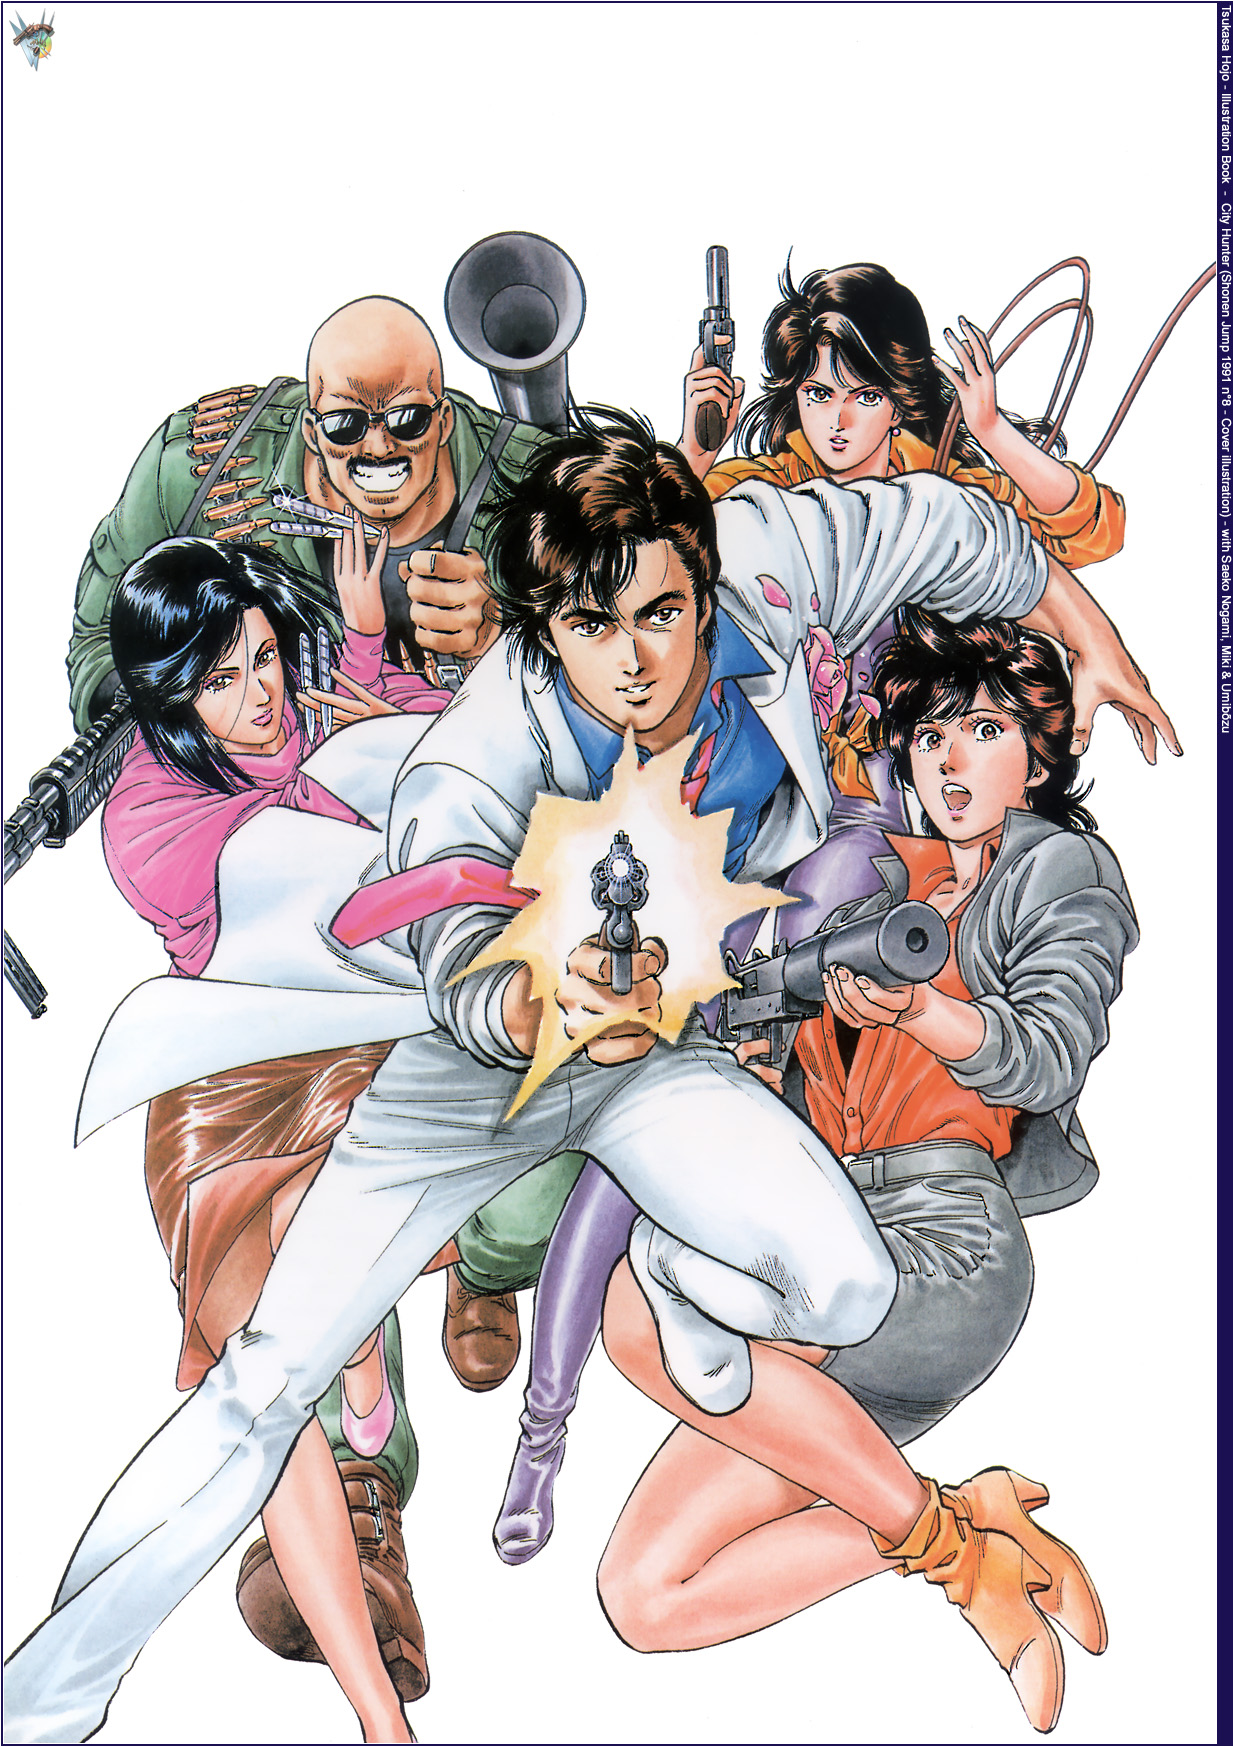 City Hunter: City Hunter Characters - Minitokyo